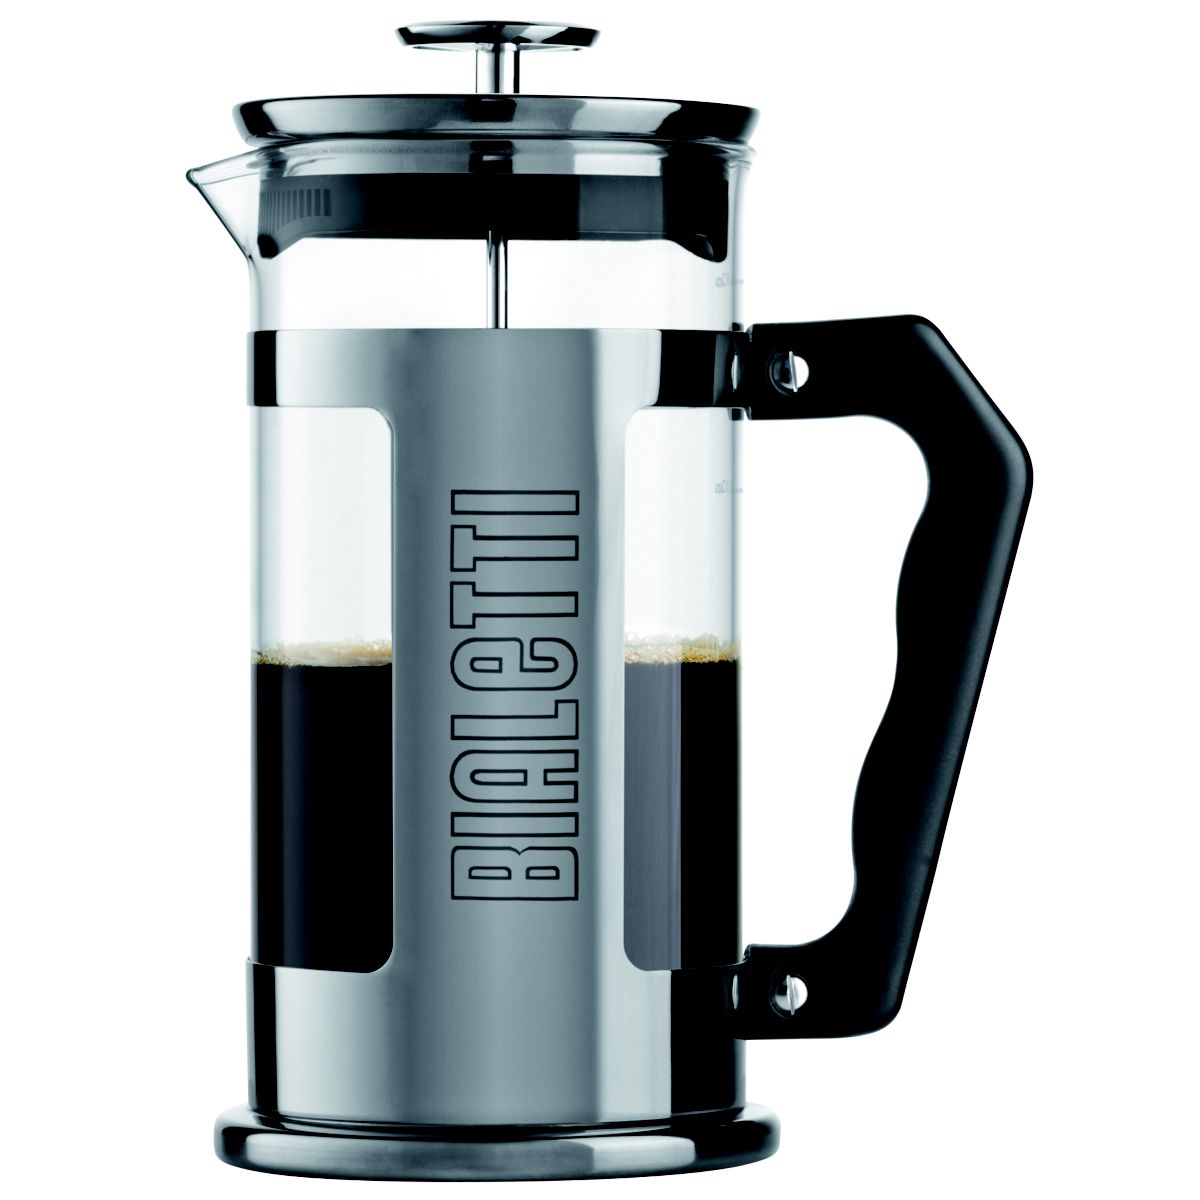 Cafetière bialetti french press bialetti 1l - livraison offerte : code liv (photo)